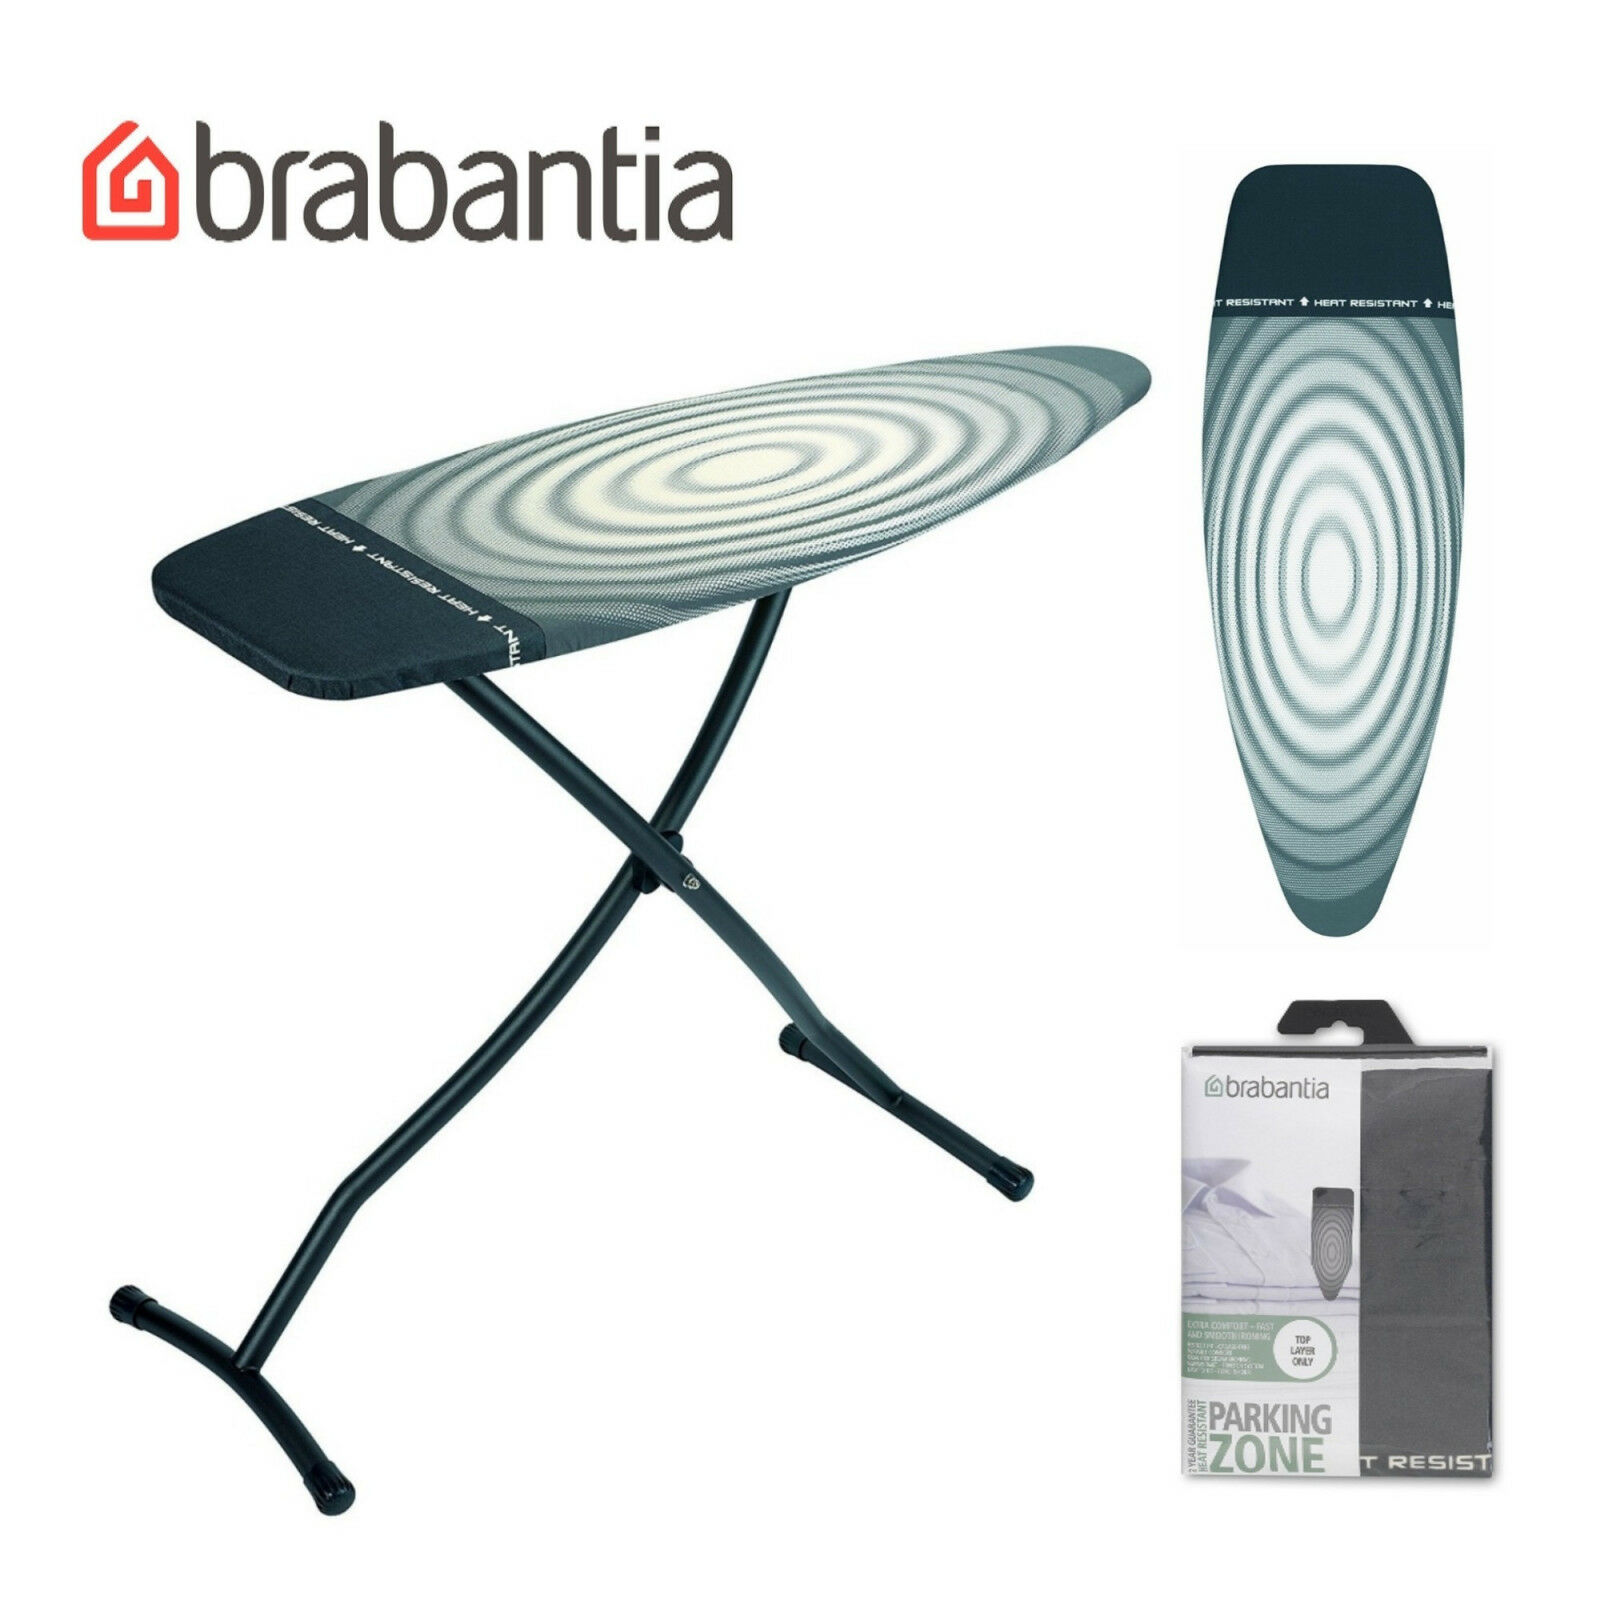 Brabantia Contact Details About Brabantia Ironing Board Oval Cover With Parking Zone Size D Extra Large Titan